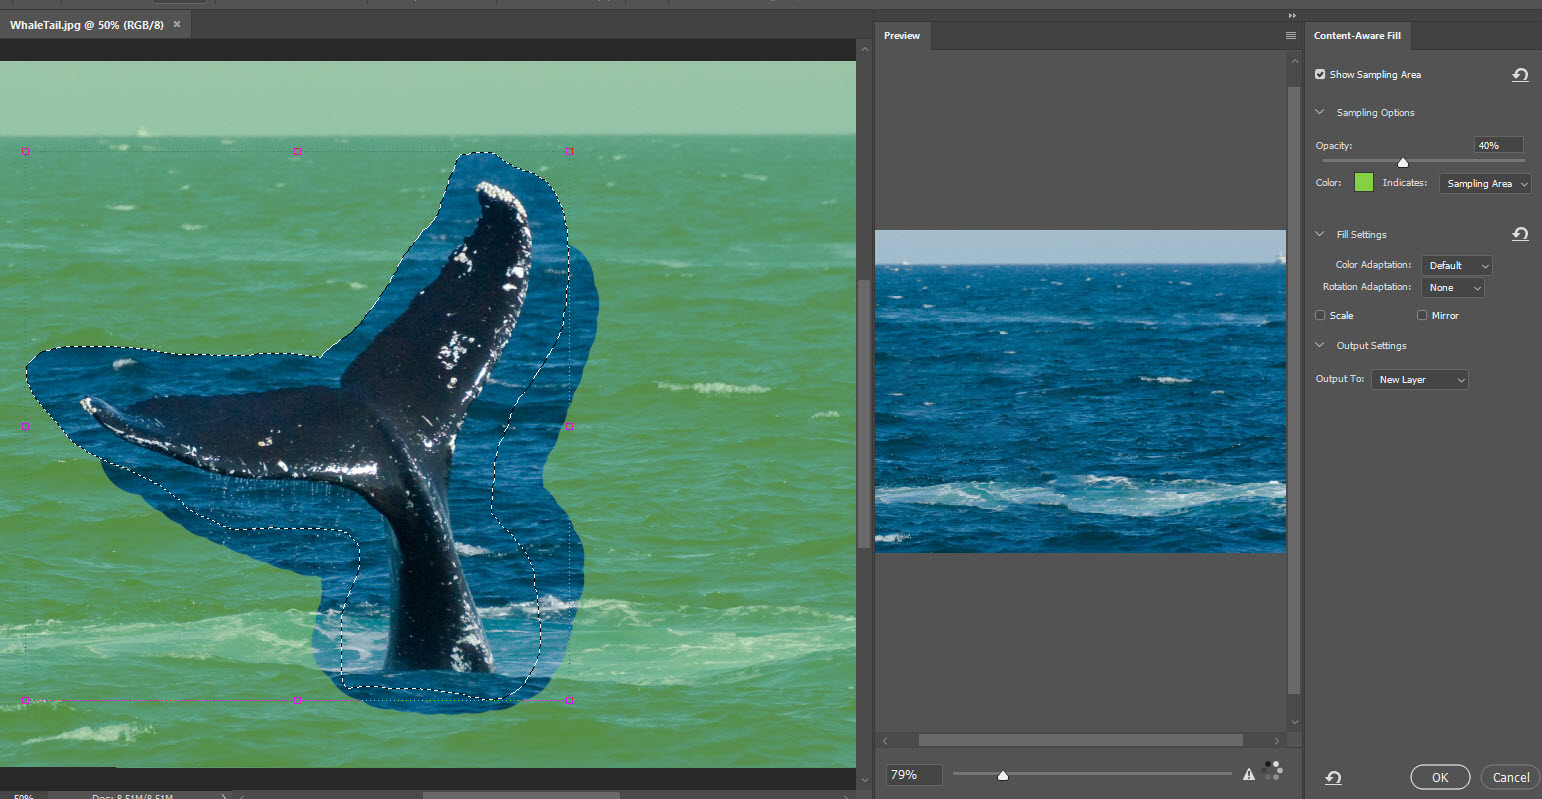 Adobe Photoshop Content Aware Fill